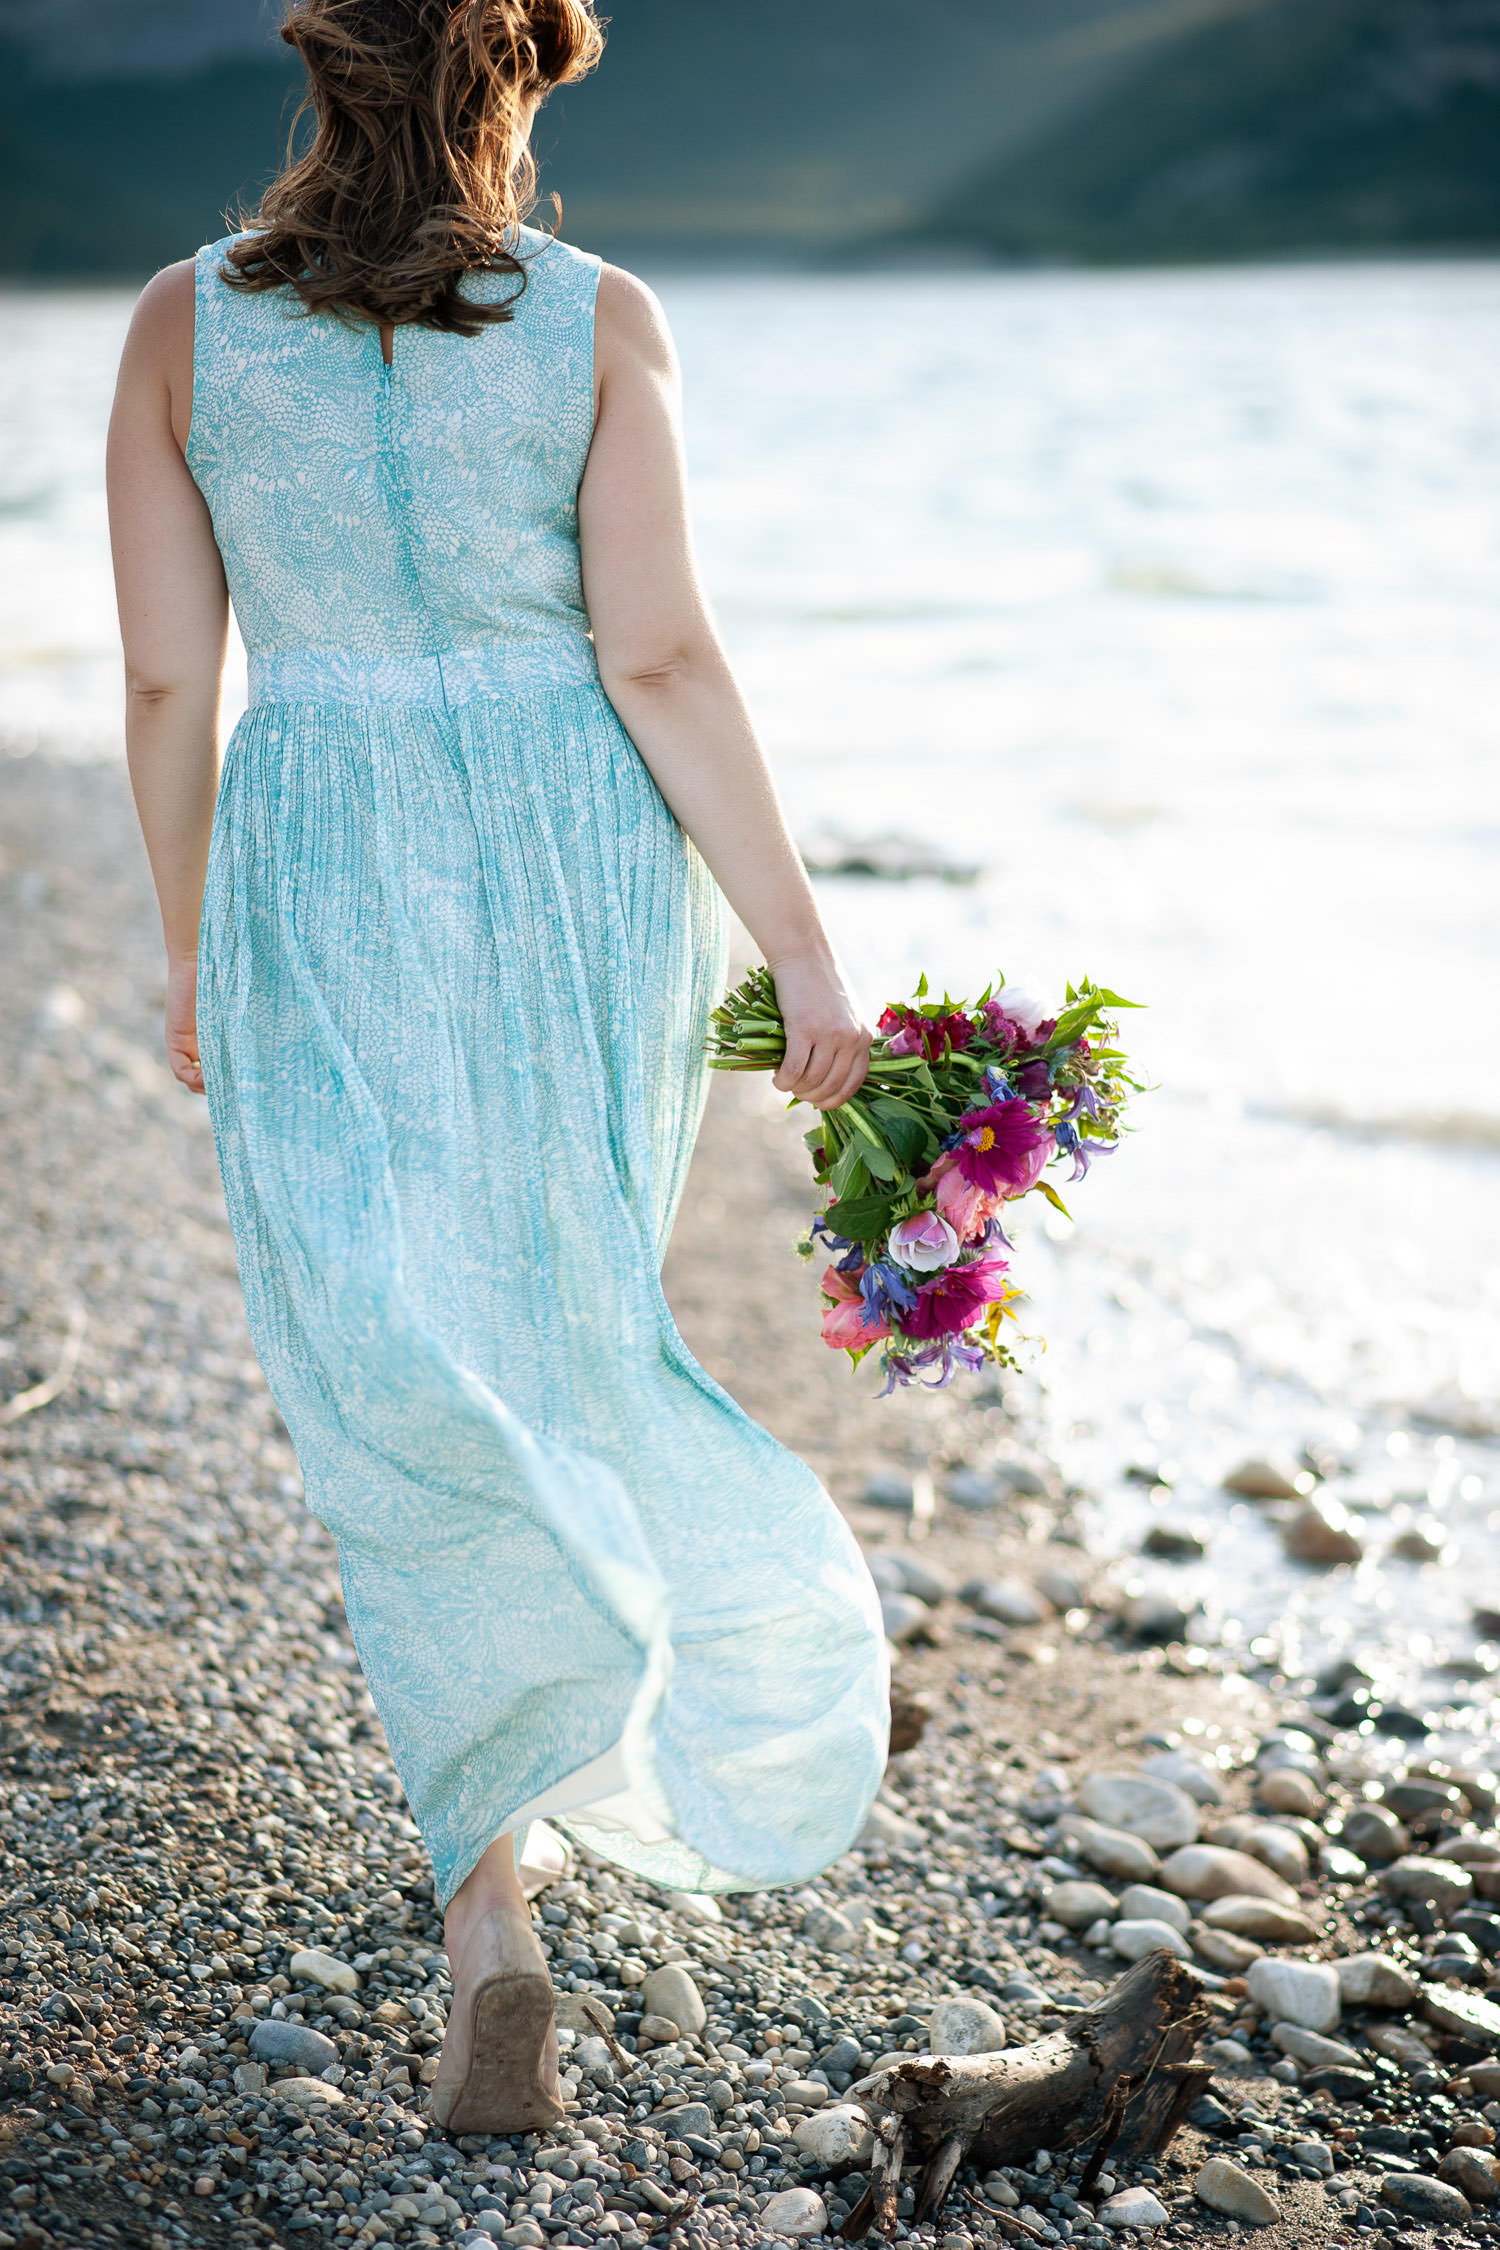 Bride carries a summer bouquet at Barrier Lake captured by Tara Whittaker Photography